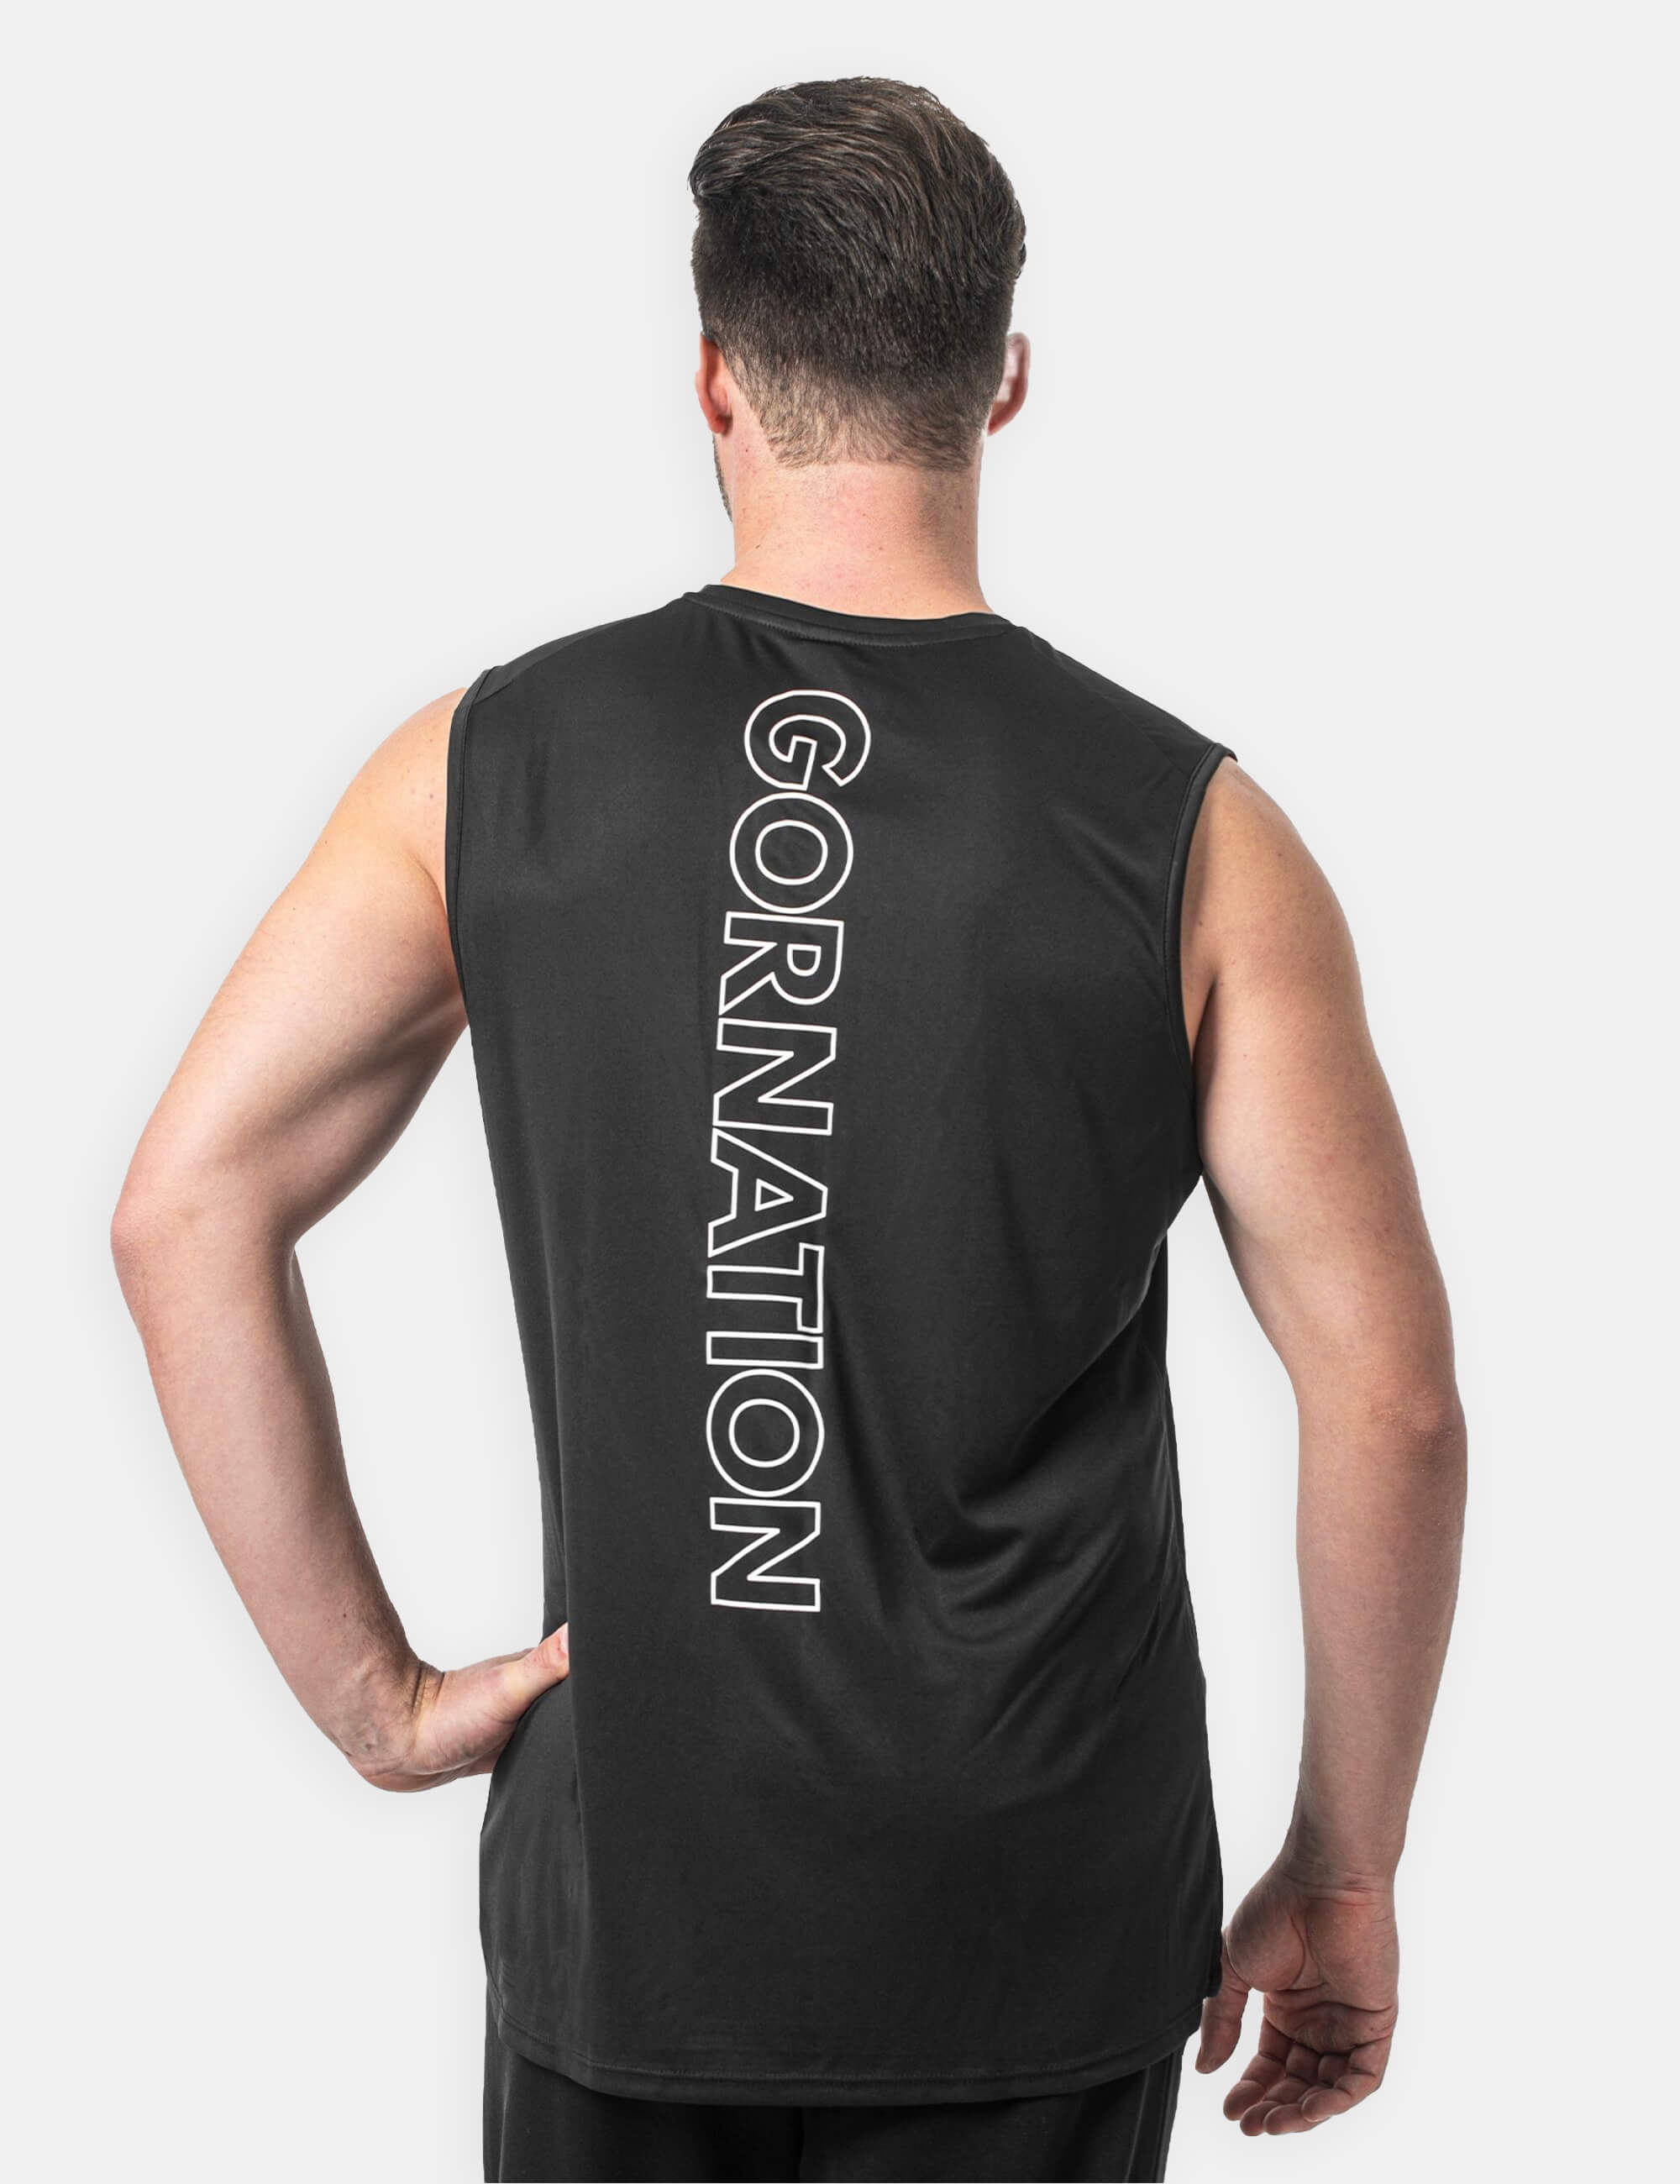 Black perfomance tank top for men front side showing the performance logo.